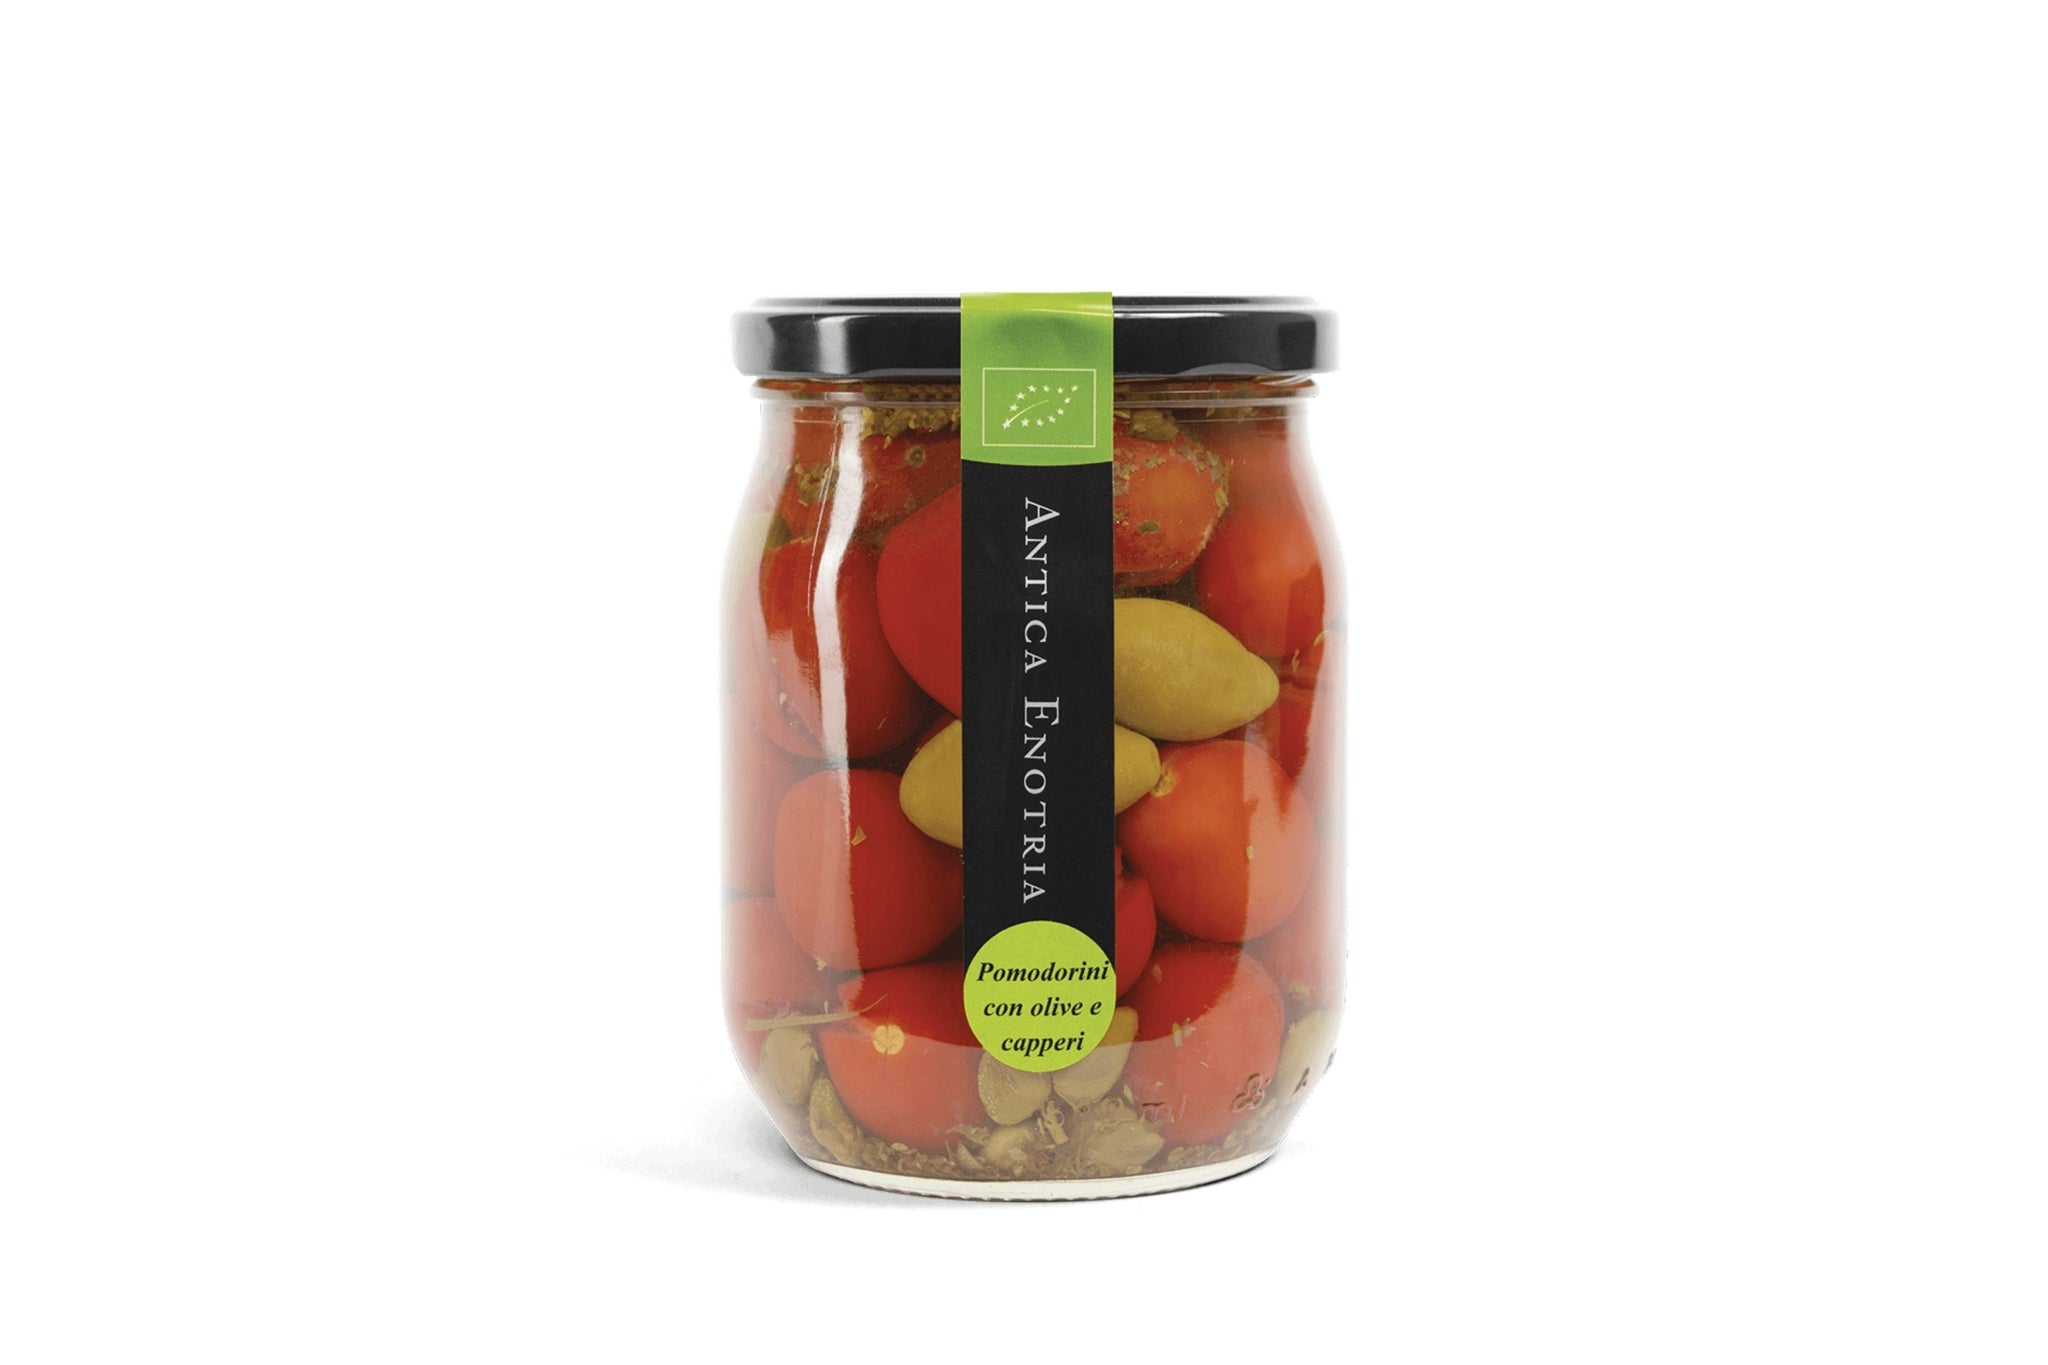 Organic Tomatoes Bella di Cerignola Olives and Capers 580g